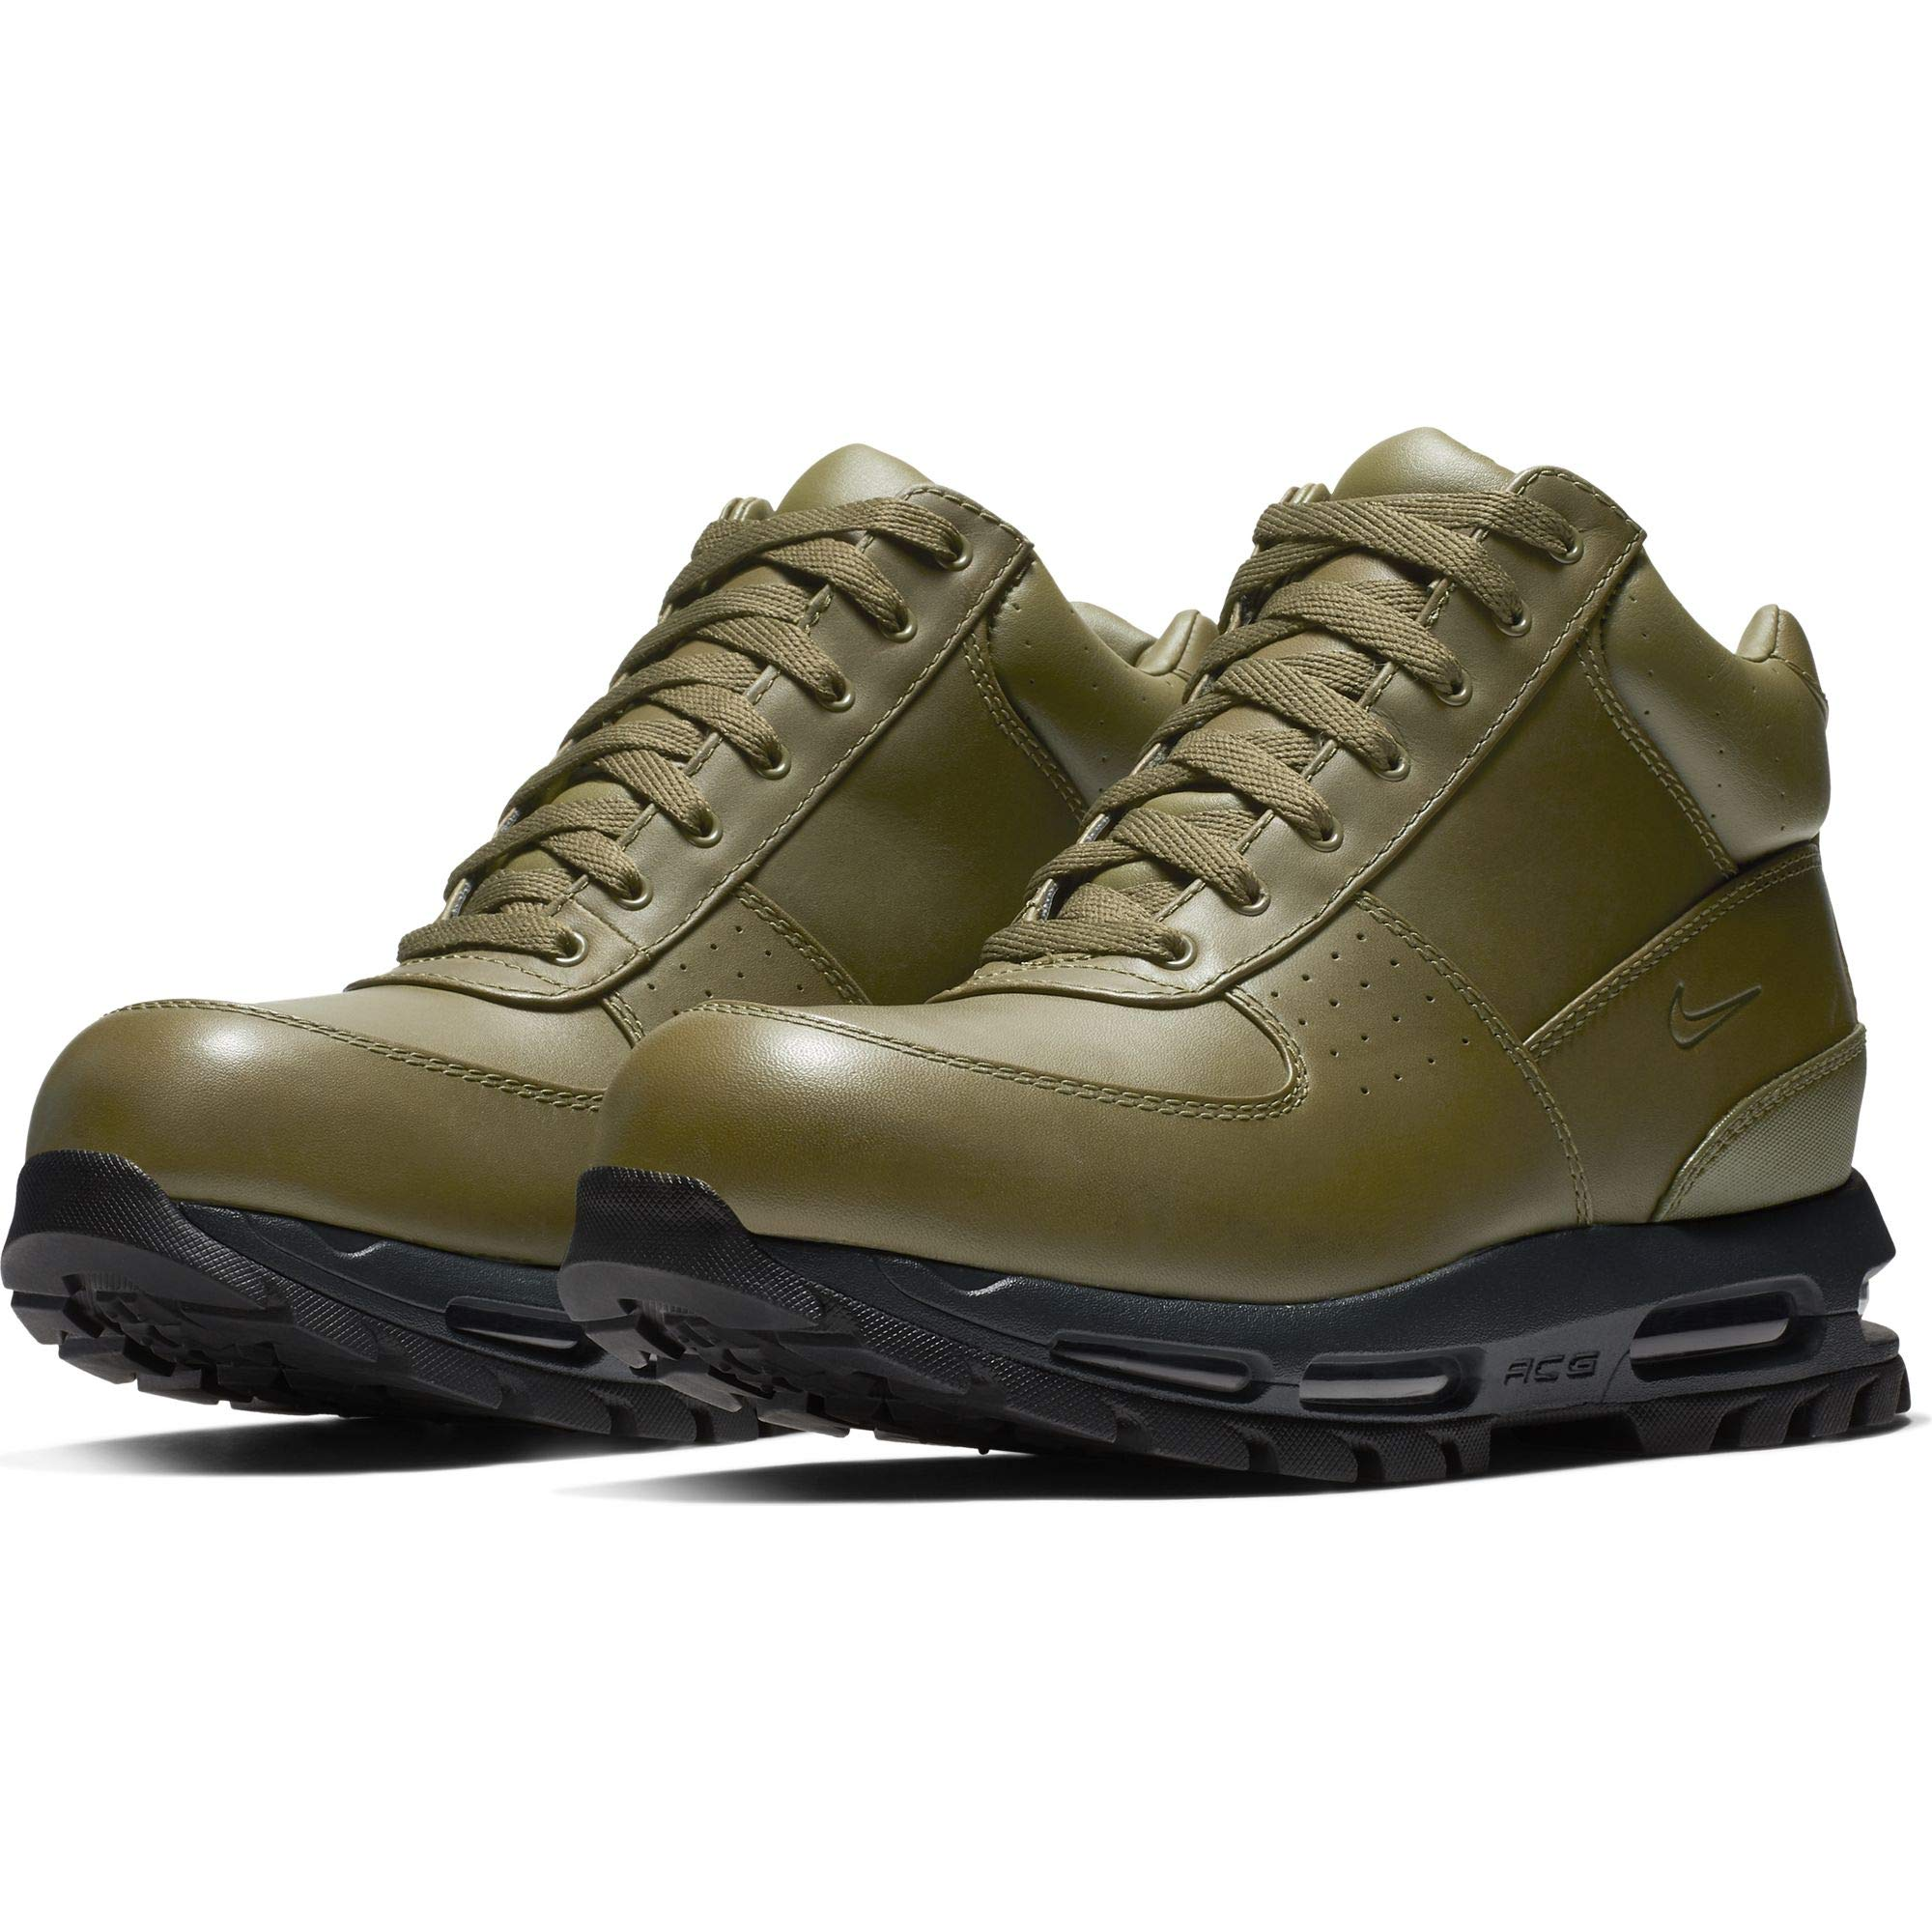 on sale efbc0 45ef5 Galleon - Nike Men s Air Max Goadome Boot, Olive Canvas Anthracite, 7.5